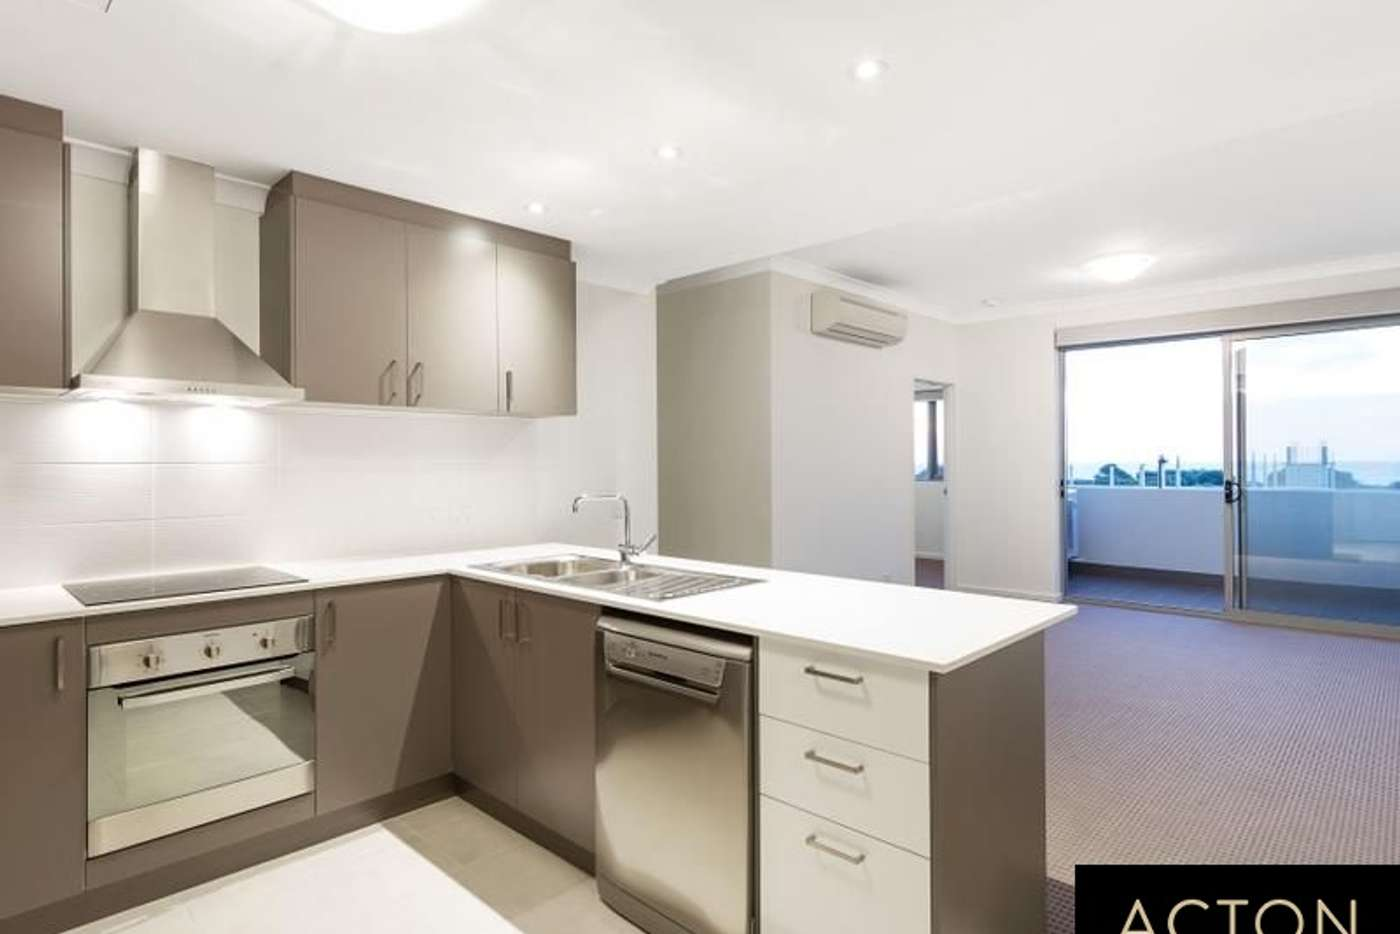 Main view of Homely apartment listing, 19/25 O'Connor Close, North Coogee WA 6163